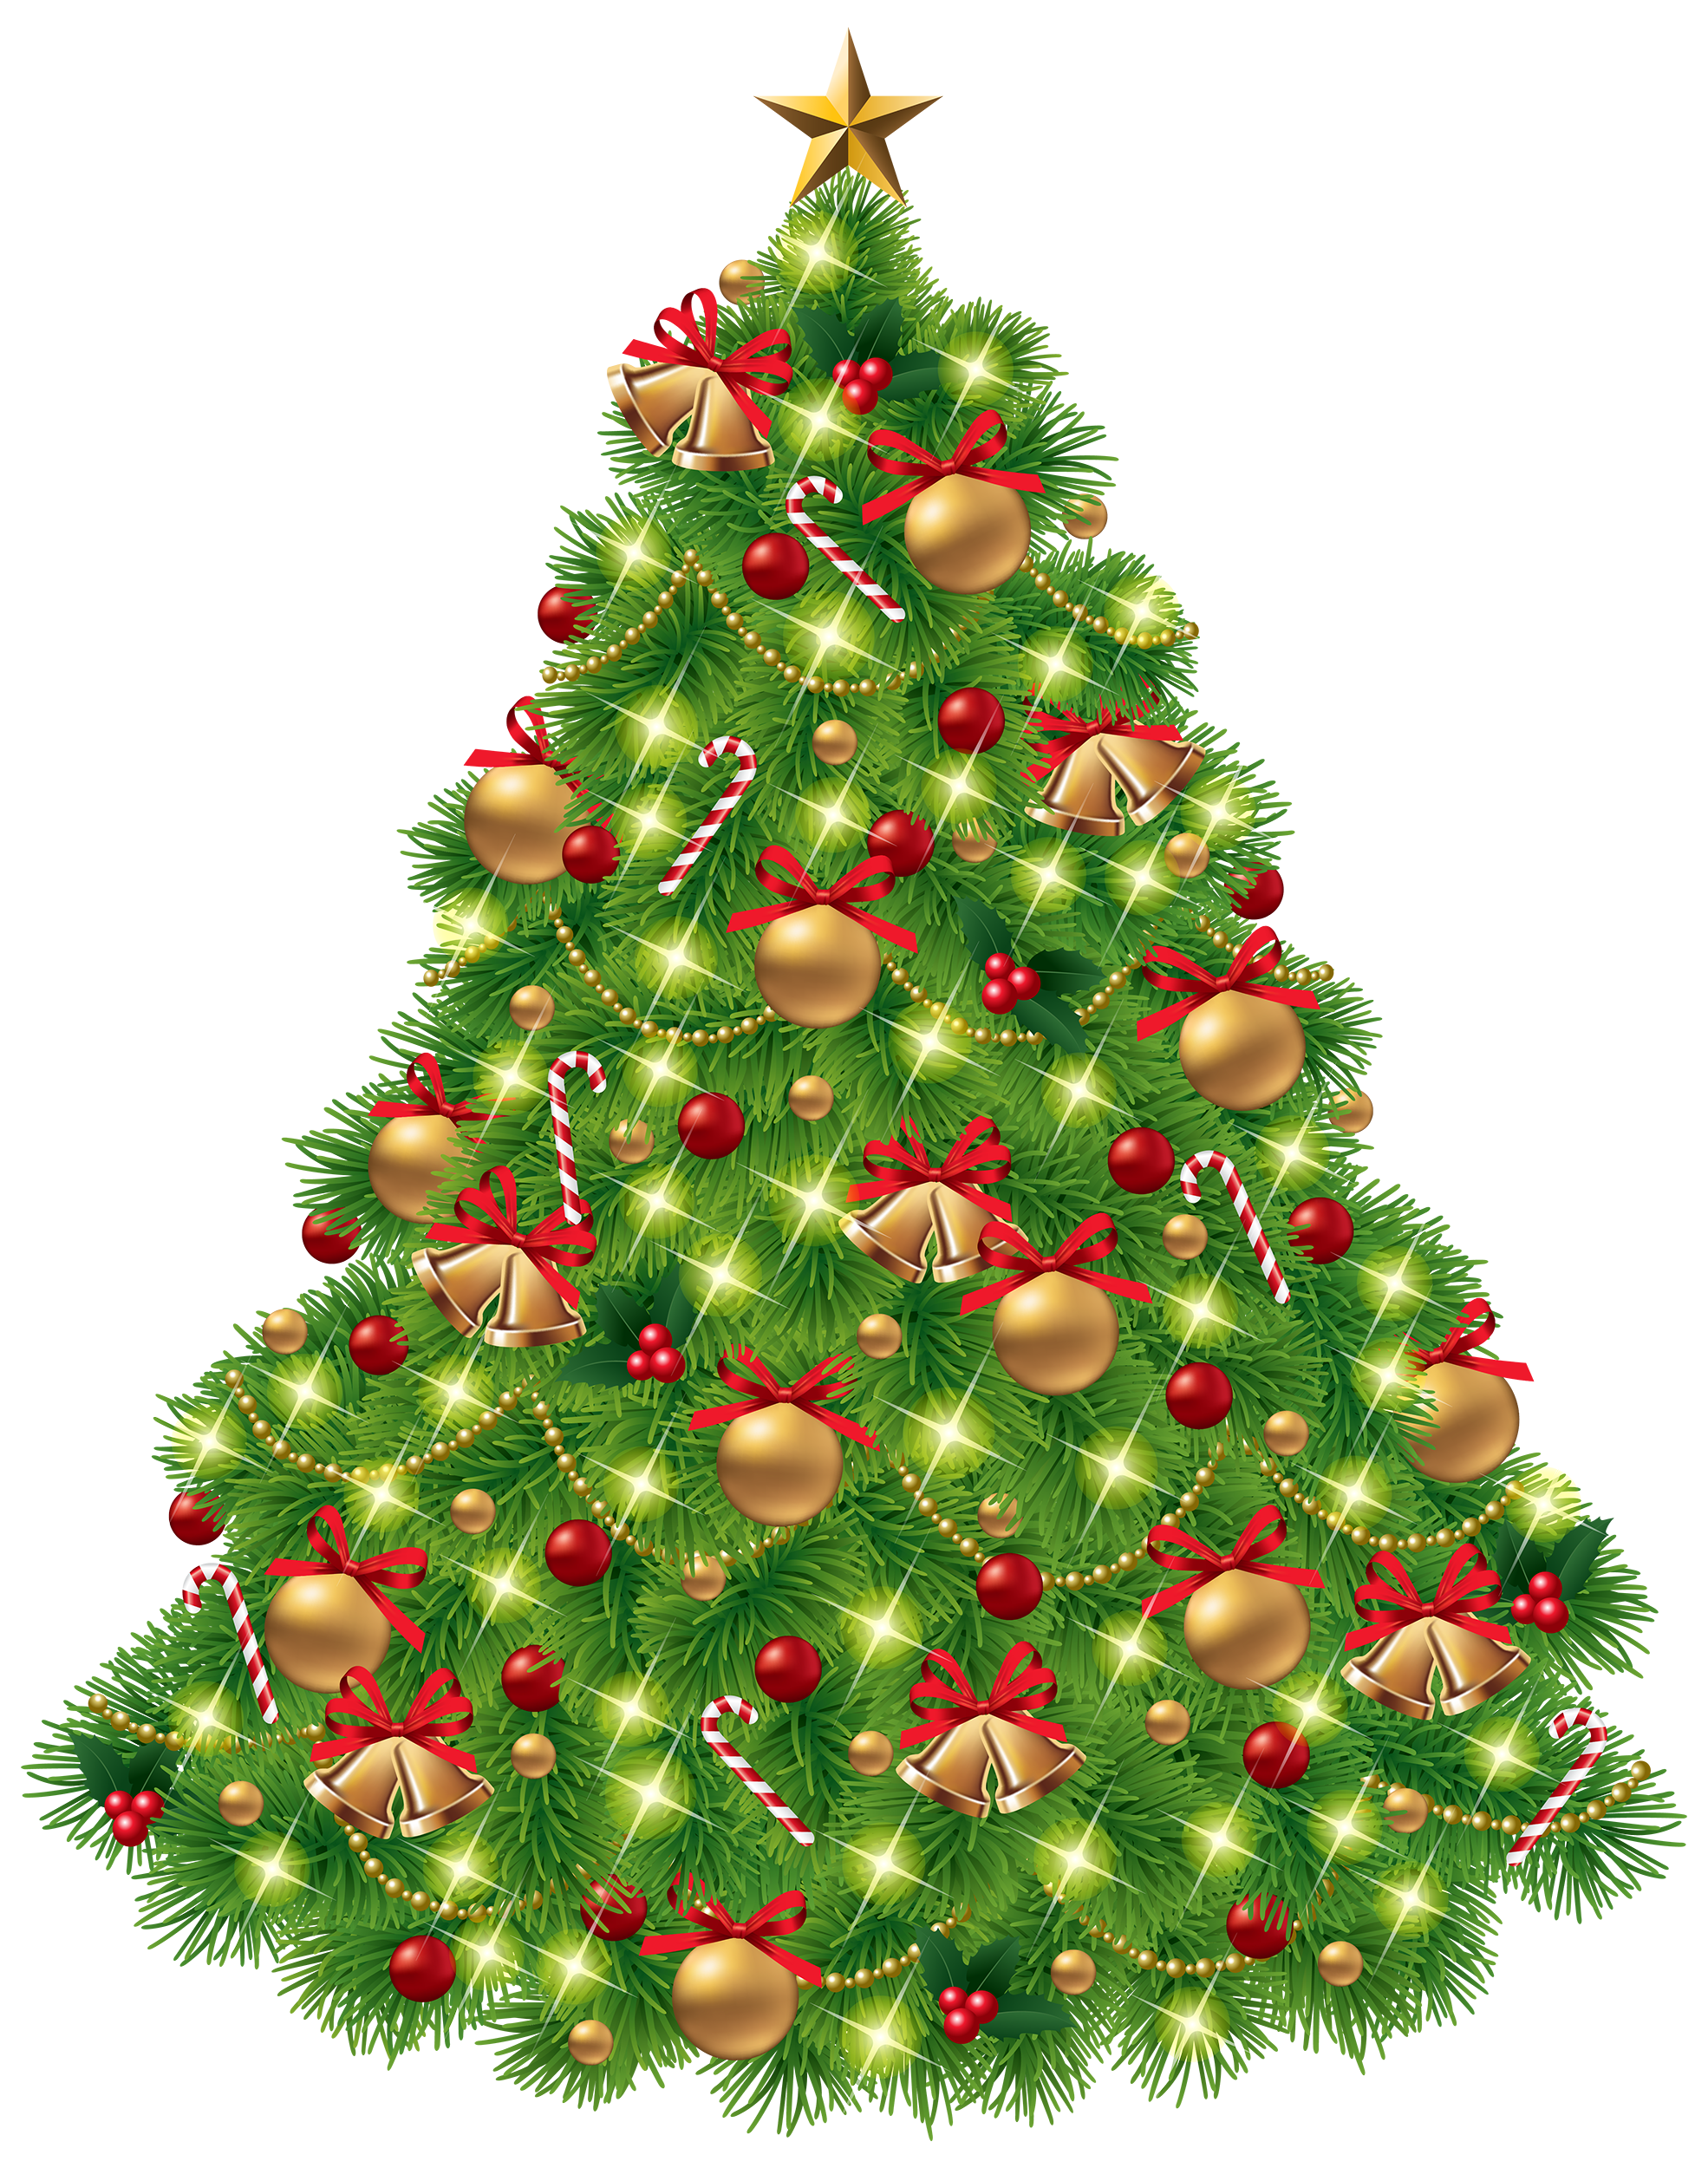 Christmas tree clipart png graphic black and white library Christmas Tree PNG Clipart - Best WEB Clipart graphic black and white library